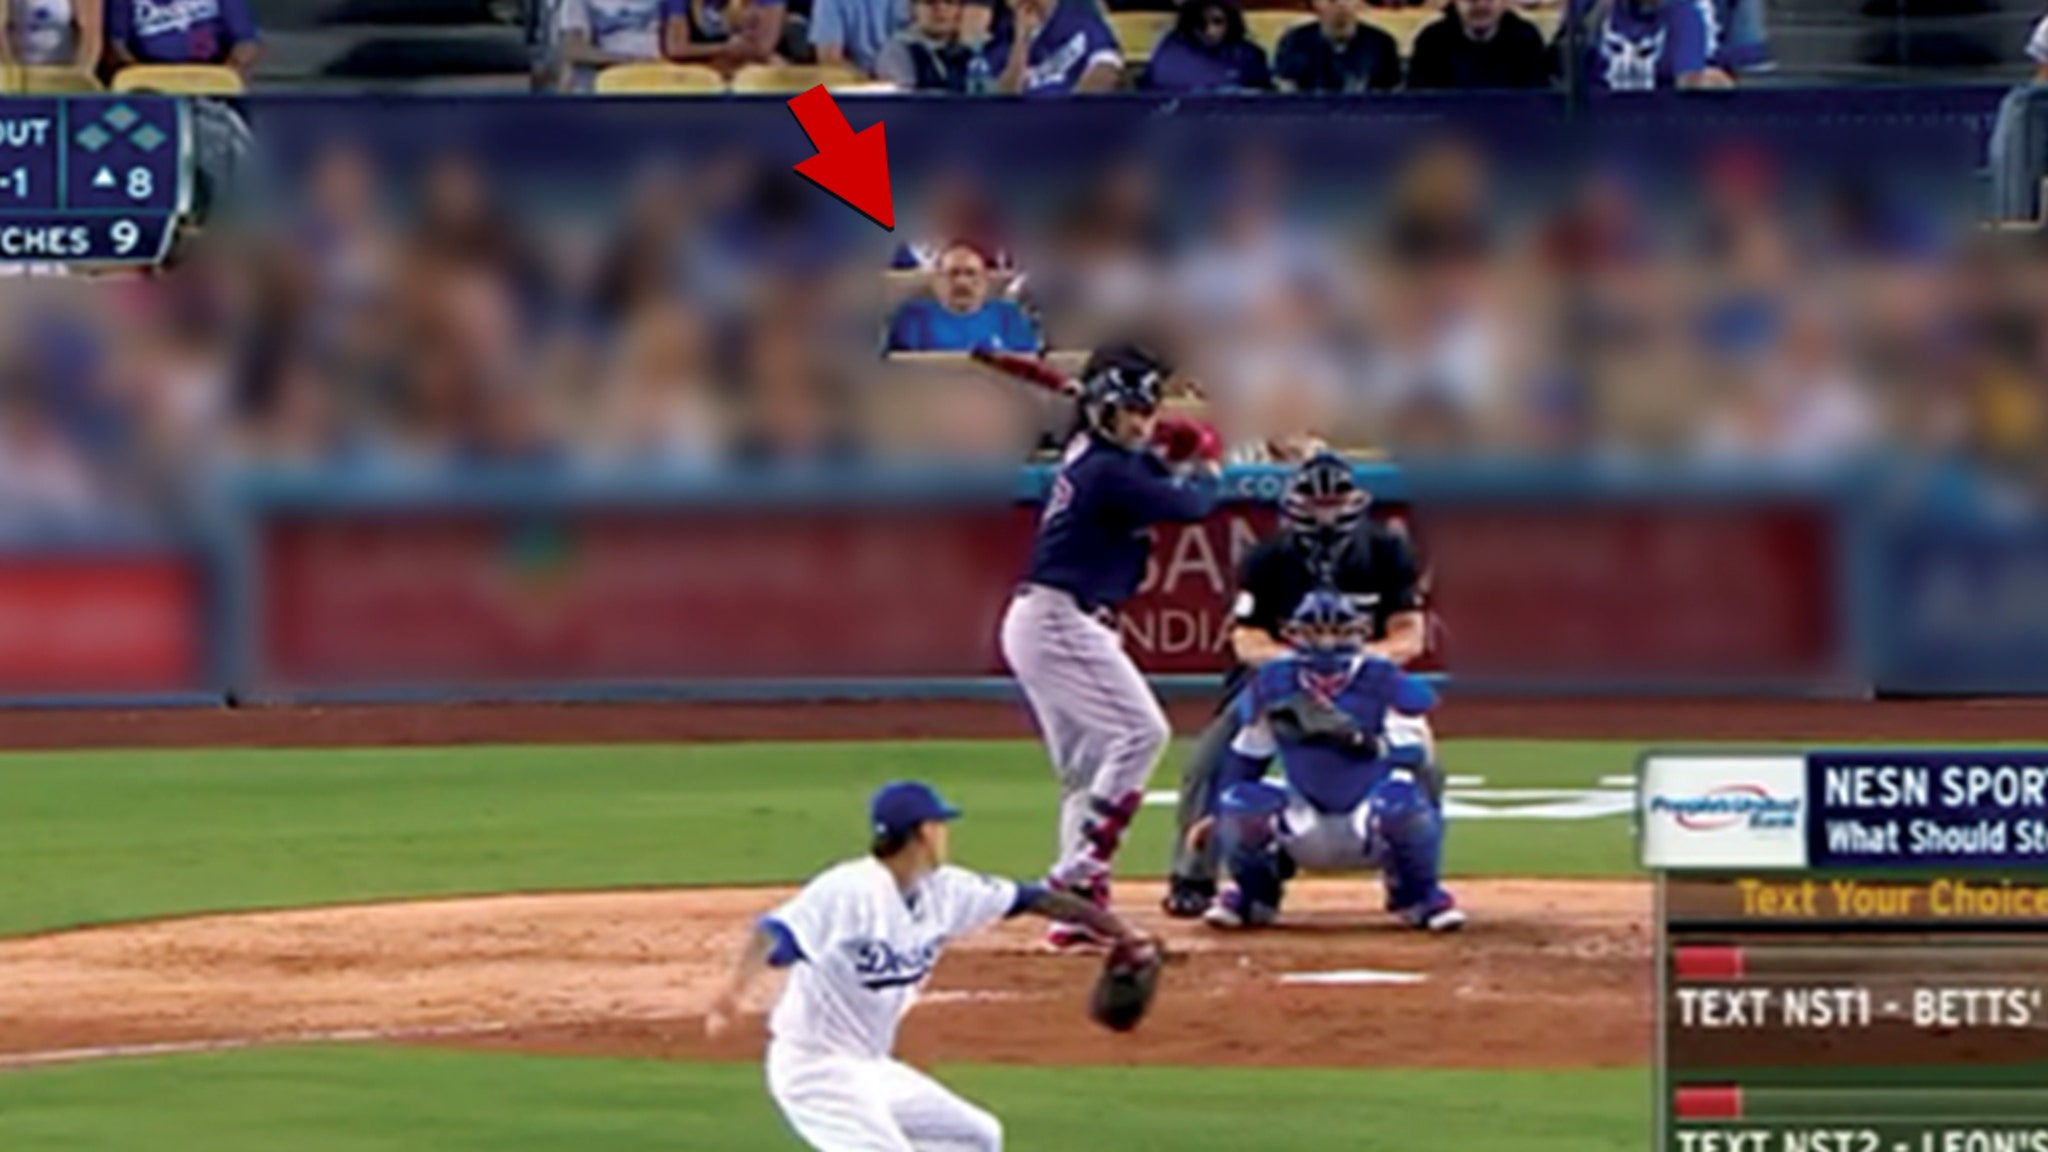 Most Wanted Fugitive Possibly Spotted Behind Home Plate At Dodgers Game - TMZ